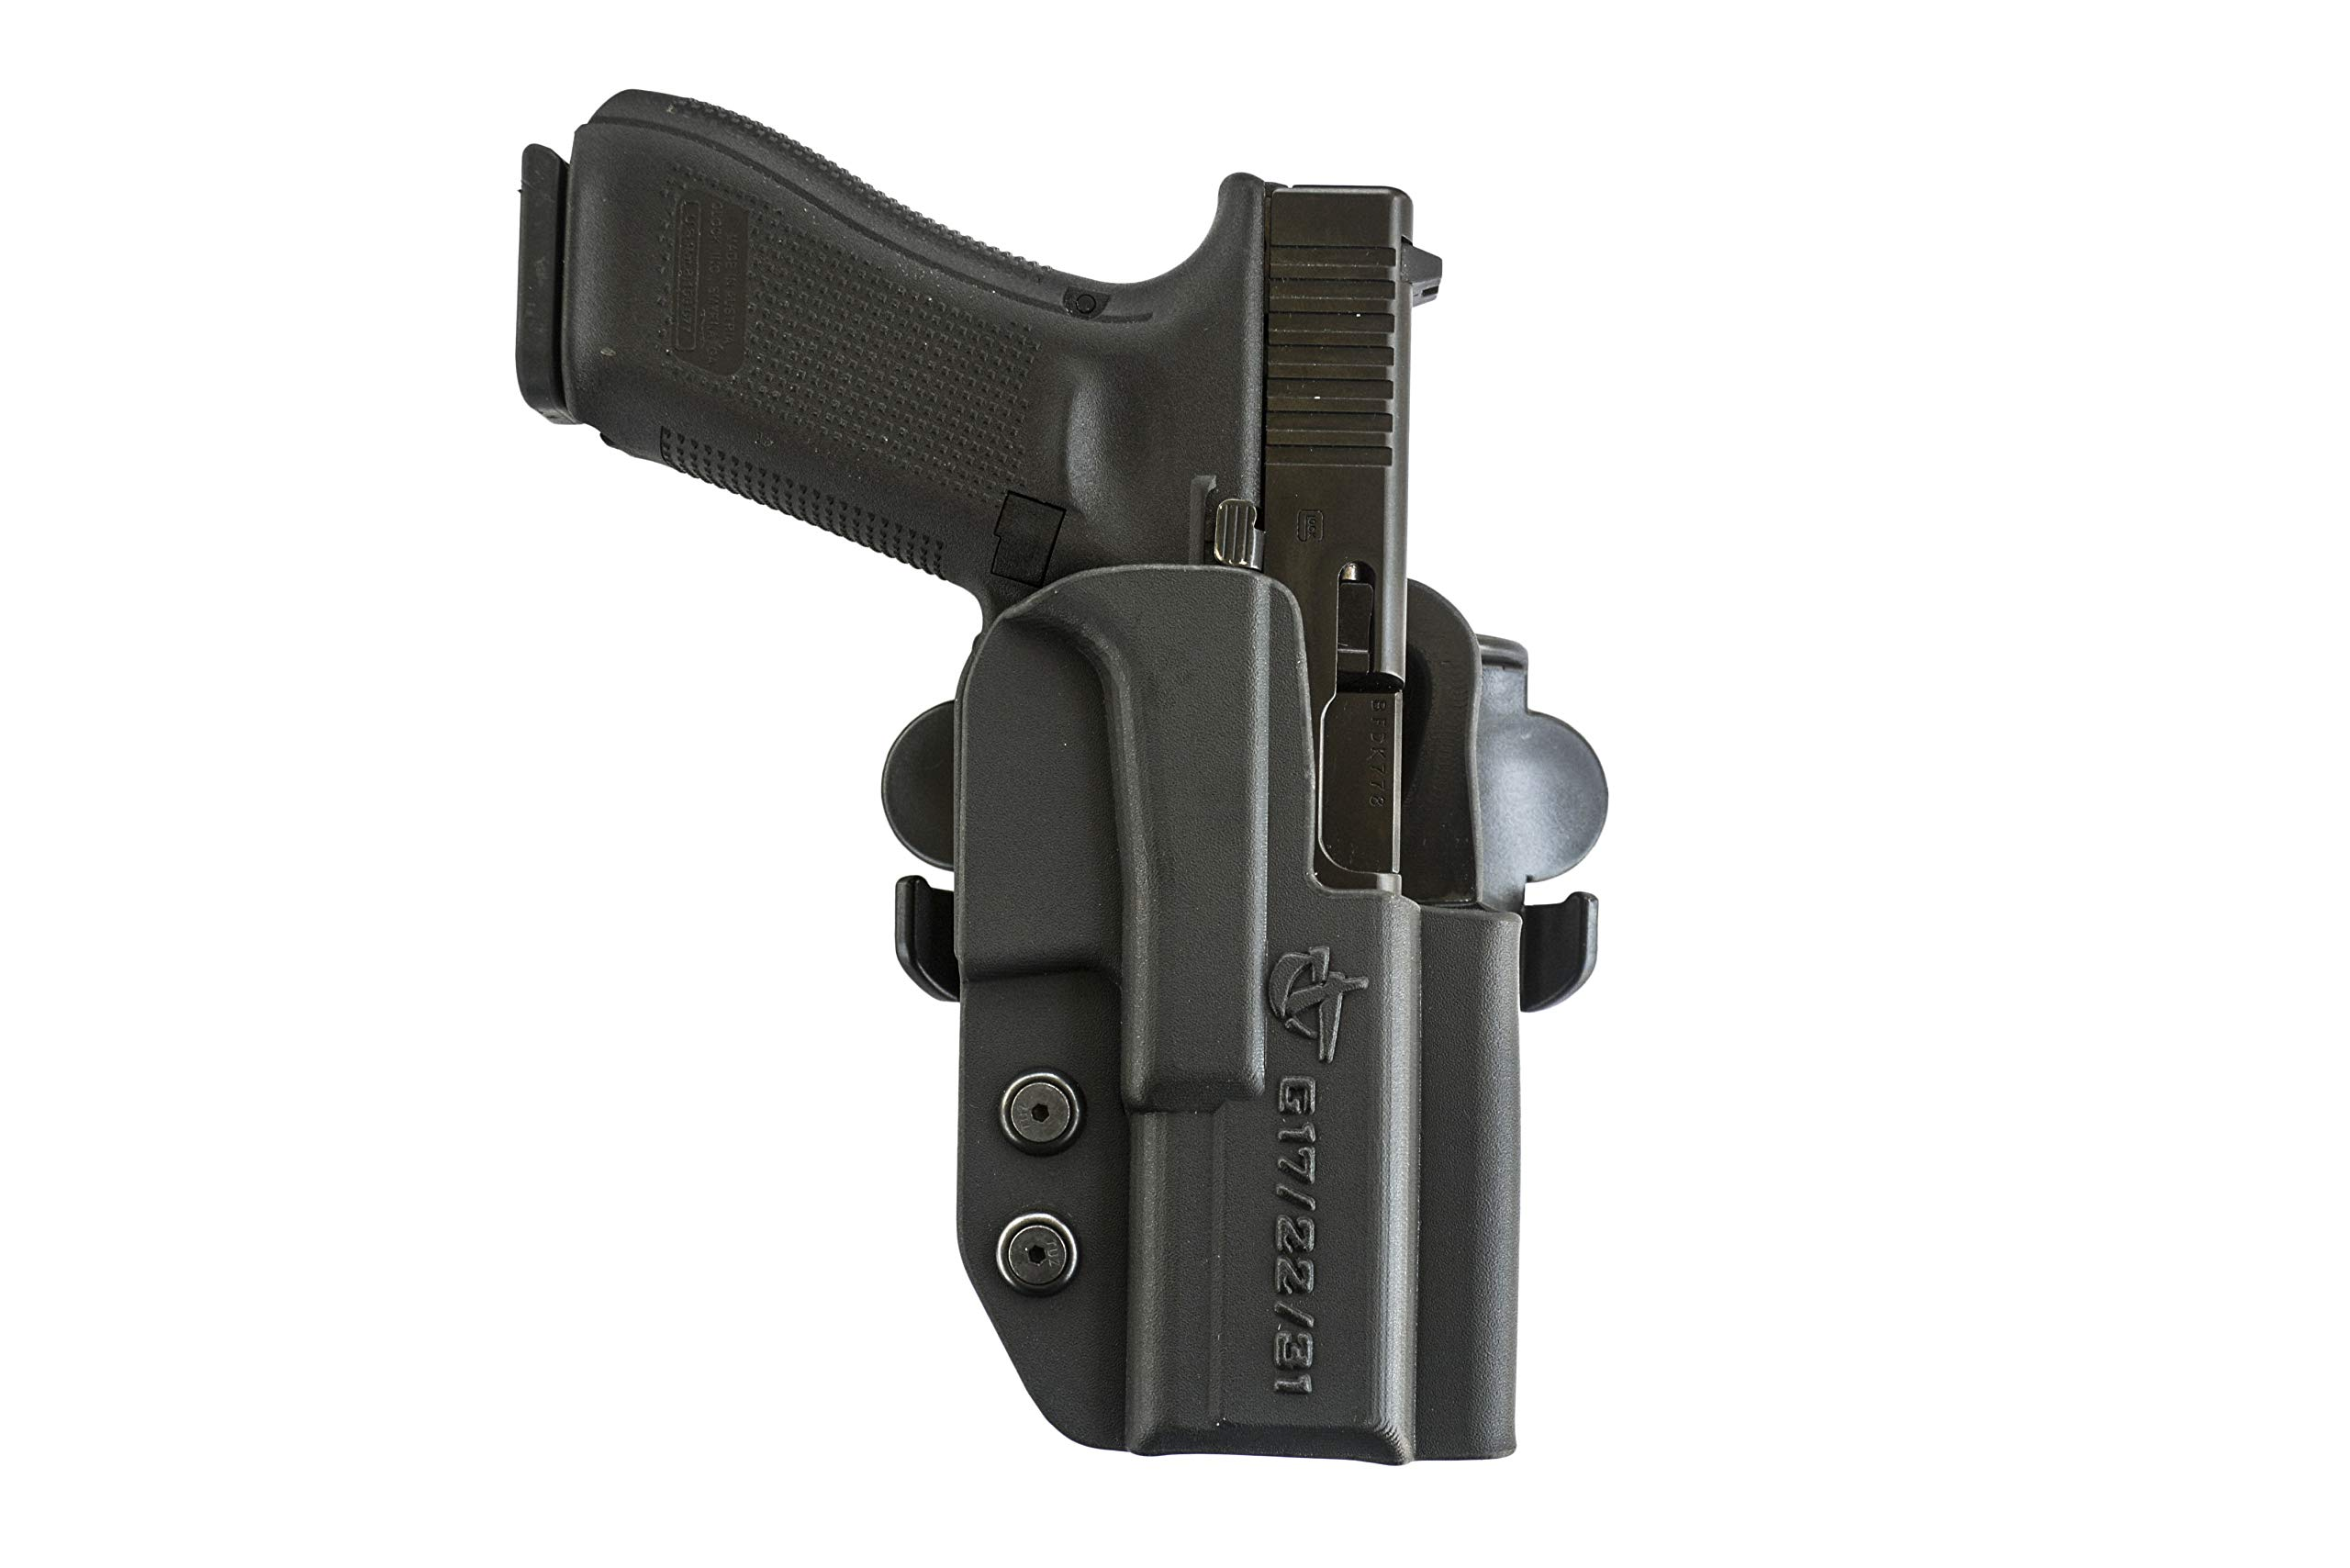 COMP-TAC.COM International - Sig P320 x-Five Carry Size Right - Black by COMP-TAC.COM